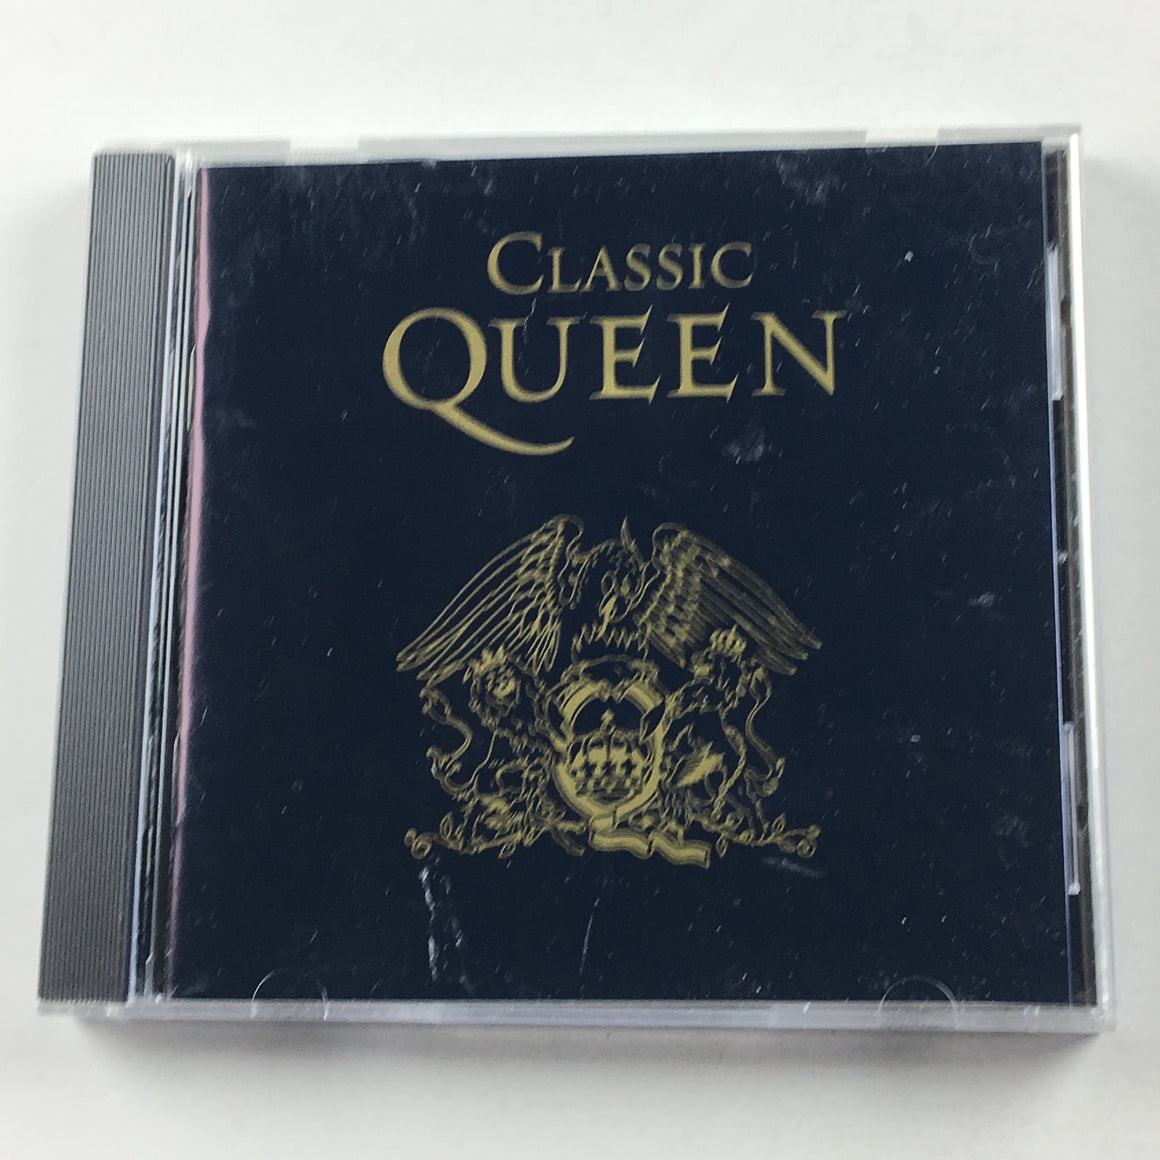 Queen Classic Queen Used CD VG+ HR-61311-2